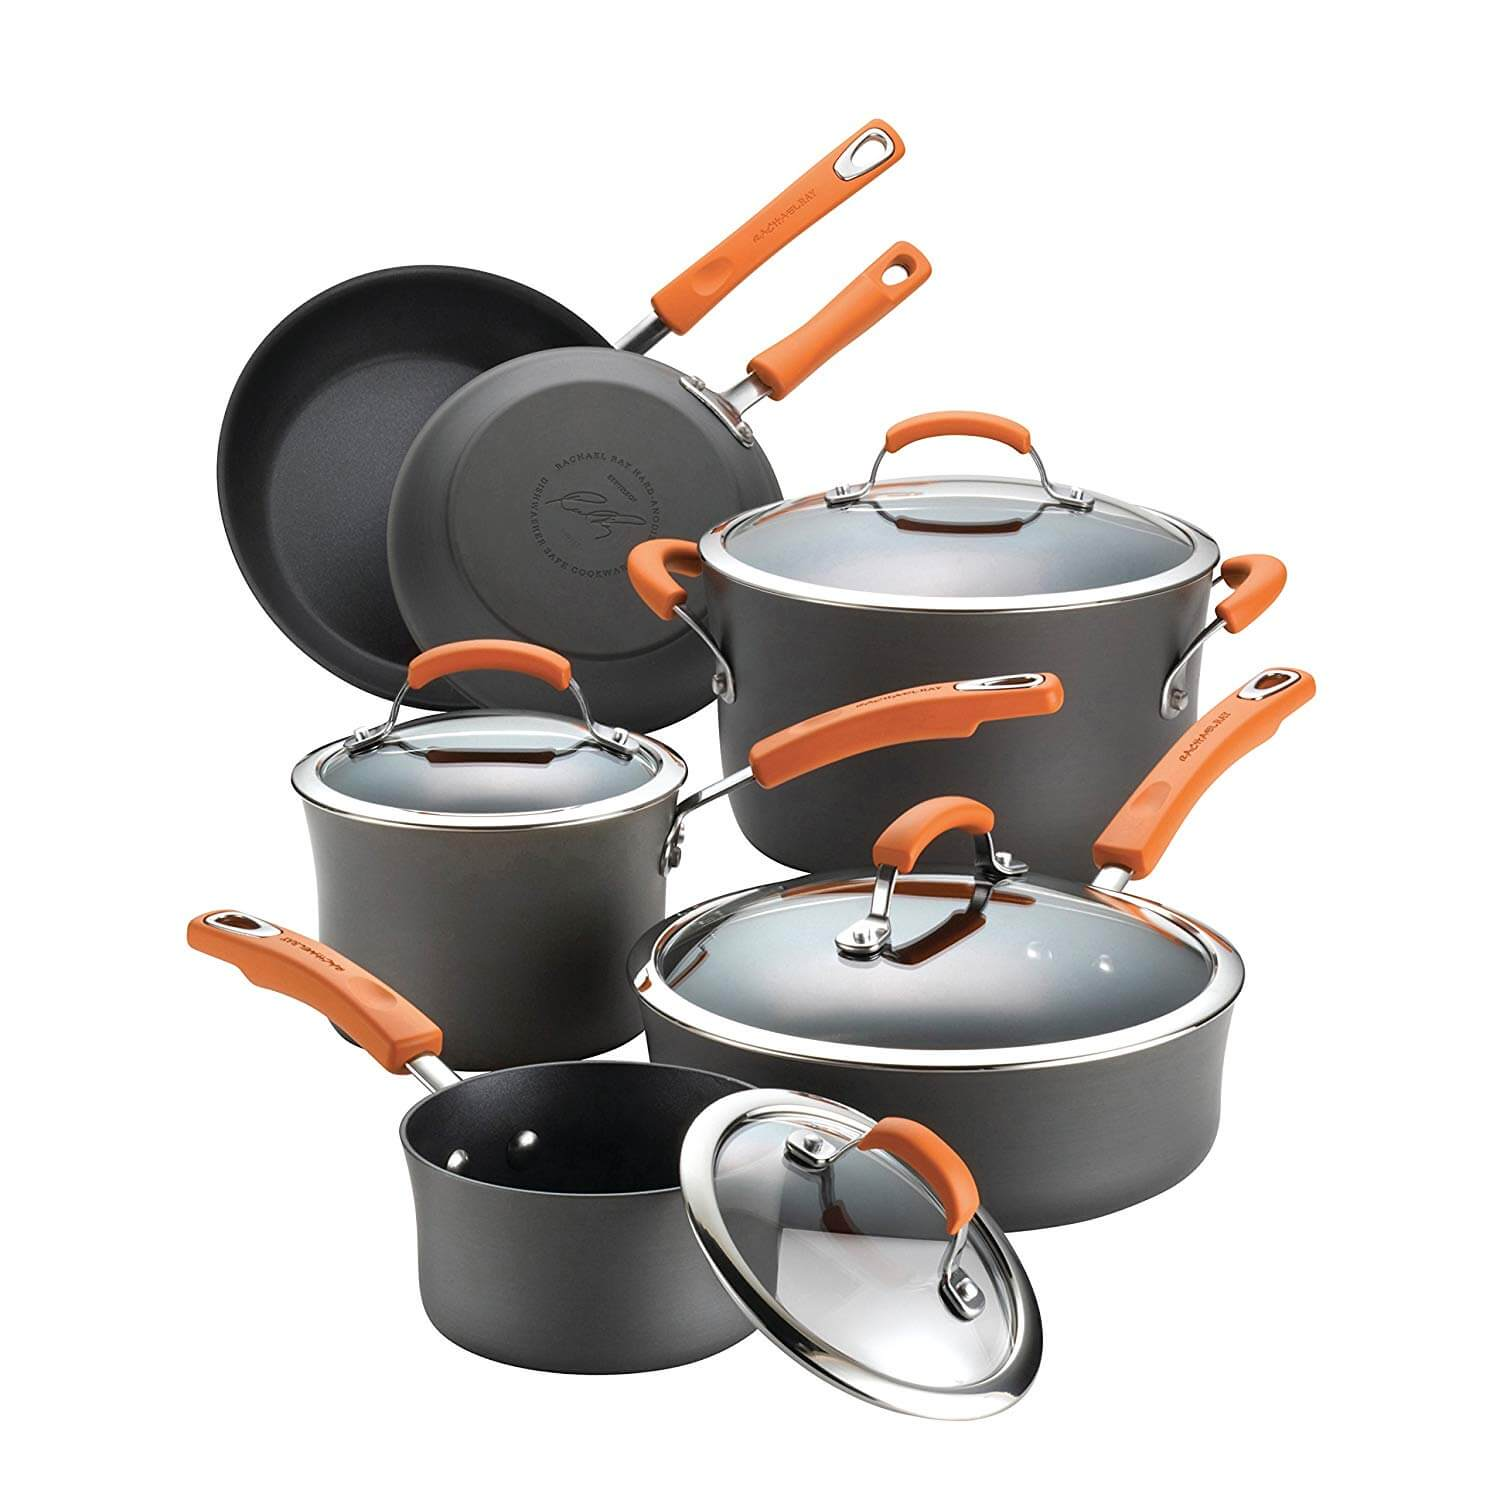 Rachael Ray Hard Anodized Non-stick 10-Piece Gray with Orange Cookware Set